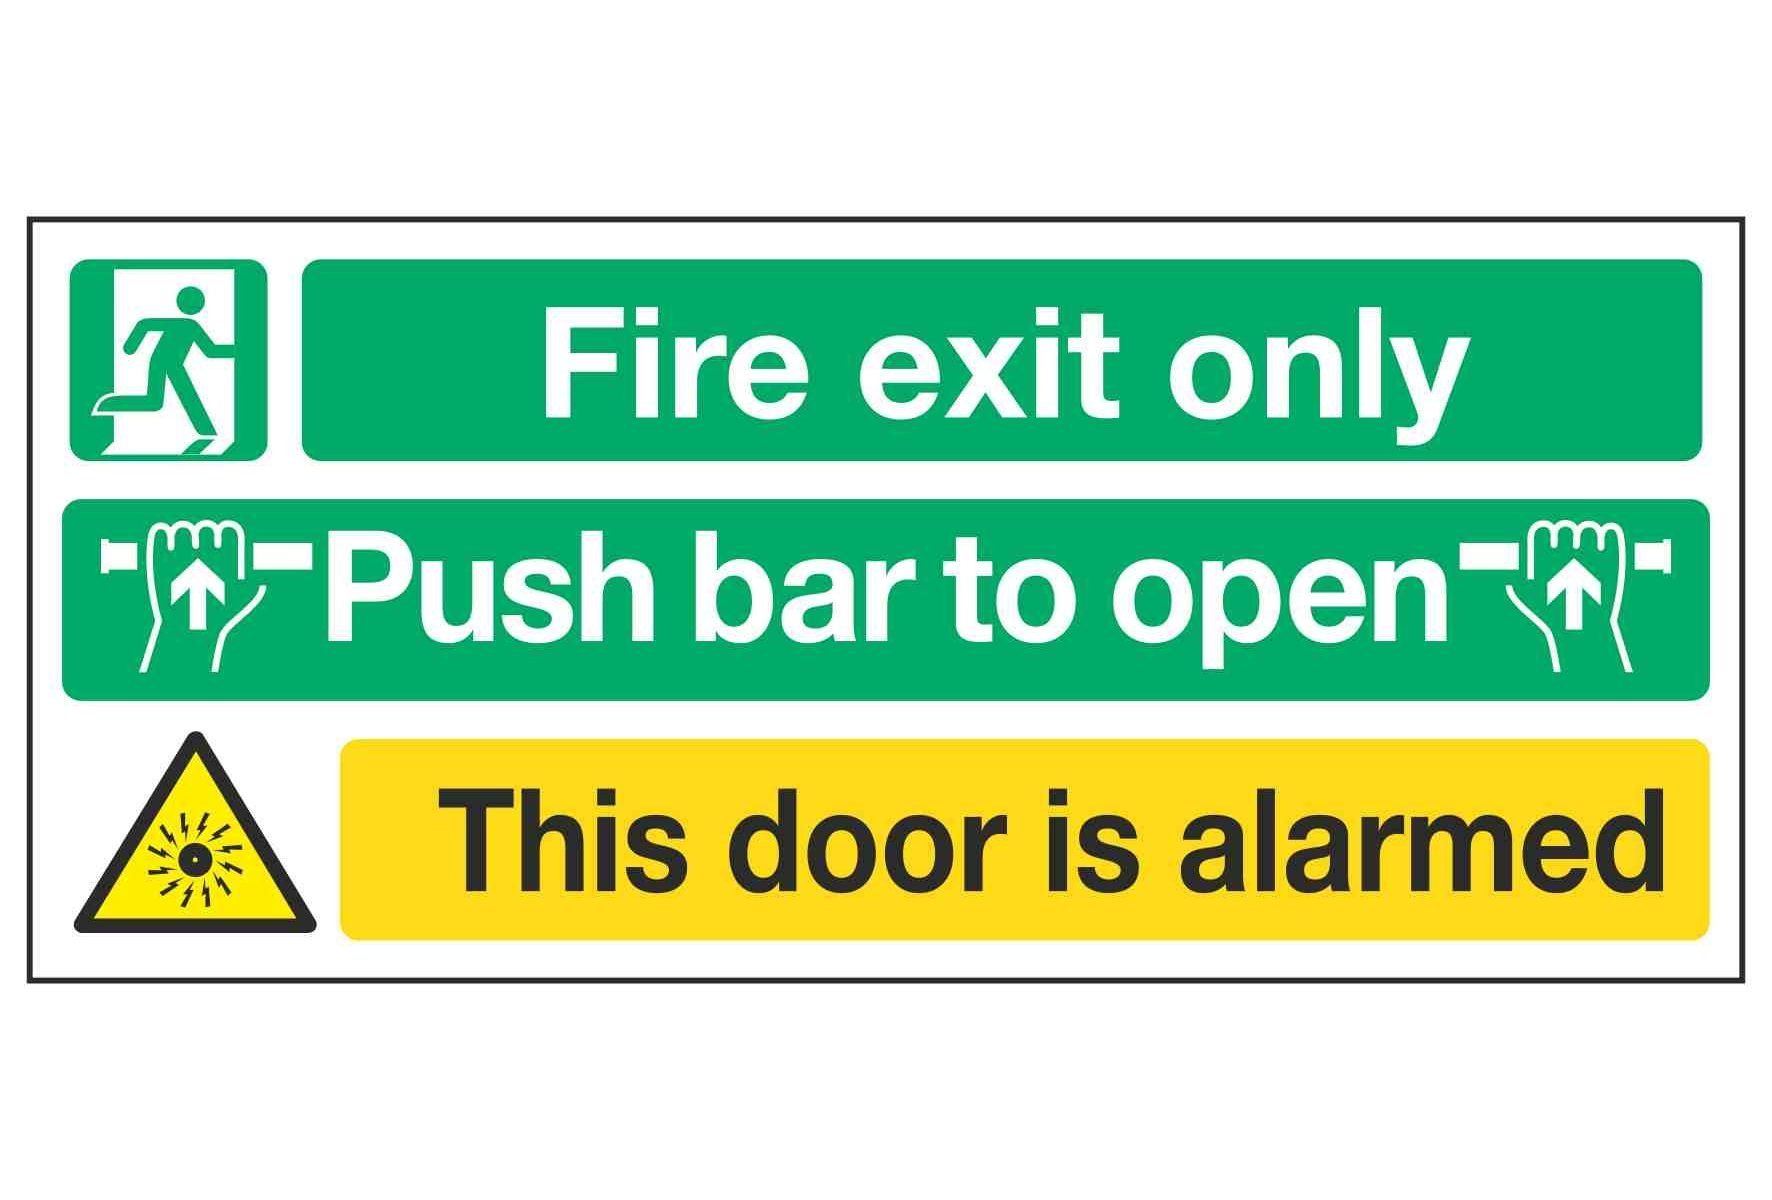 Fire exit only / Push bar to open / This door is alarmed